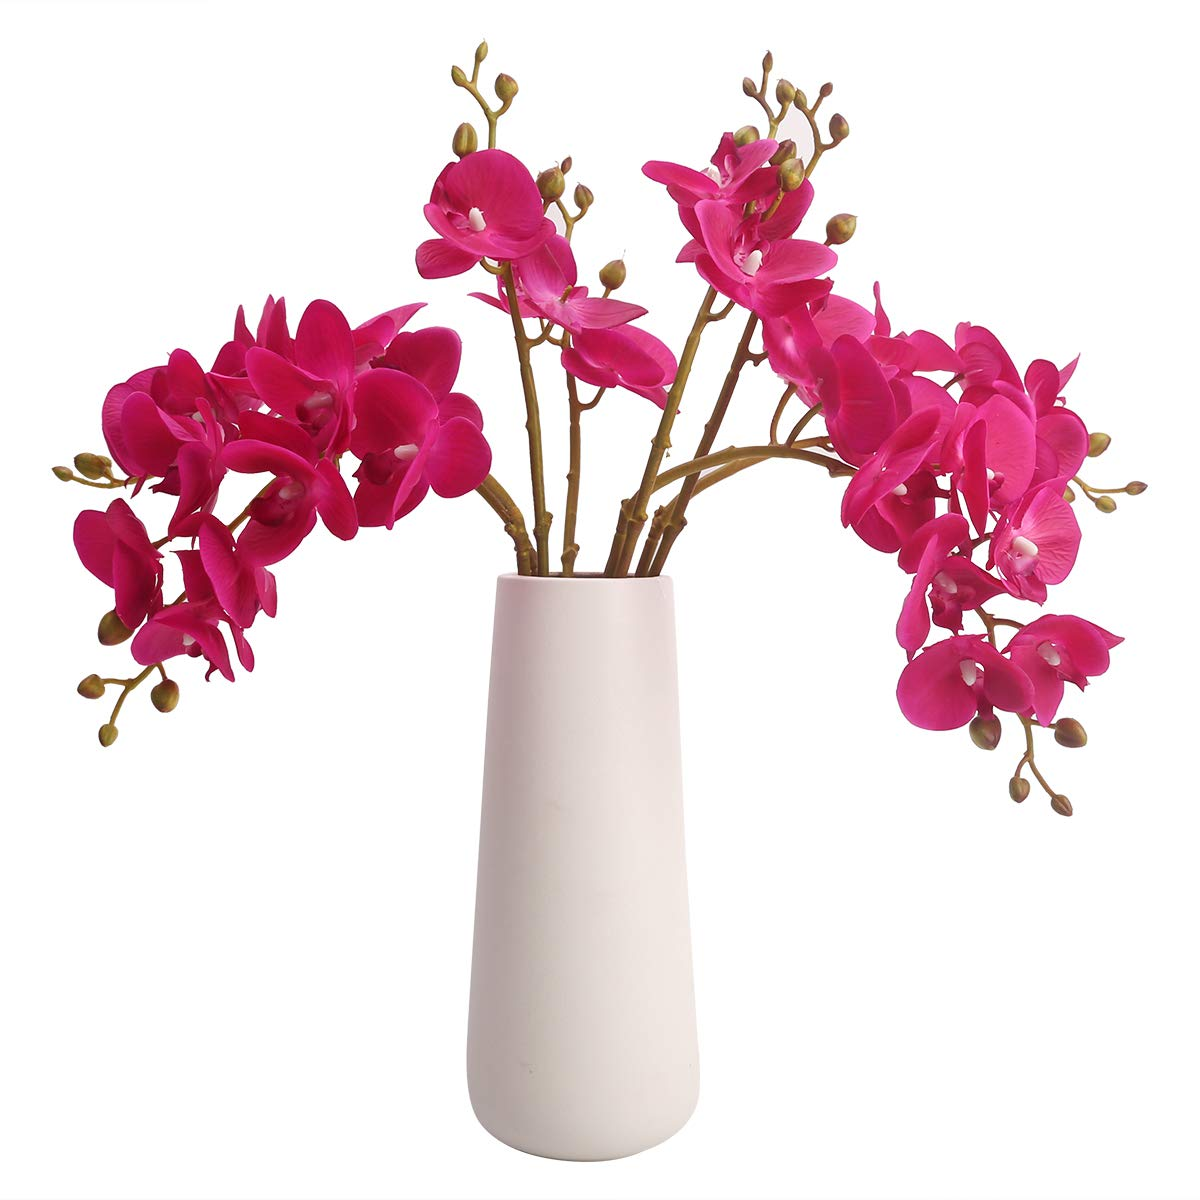 Bomarolan Artificial Butterfly Orchid Real Touch Double Branch Silk Flowers 4 Pcs for Wedding Home Party Hotel Decoration(Fuchsia)